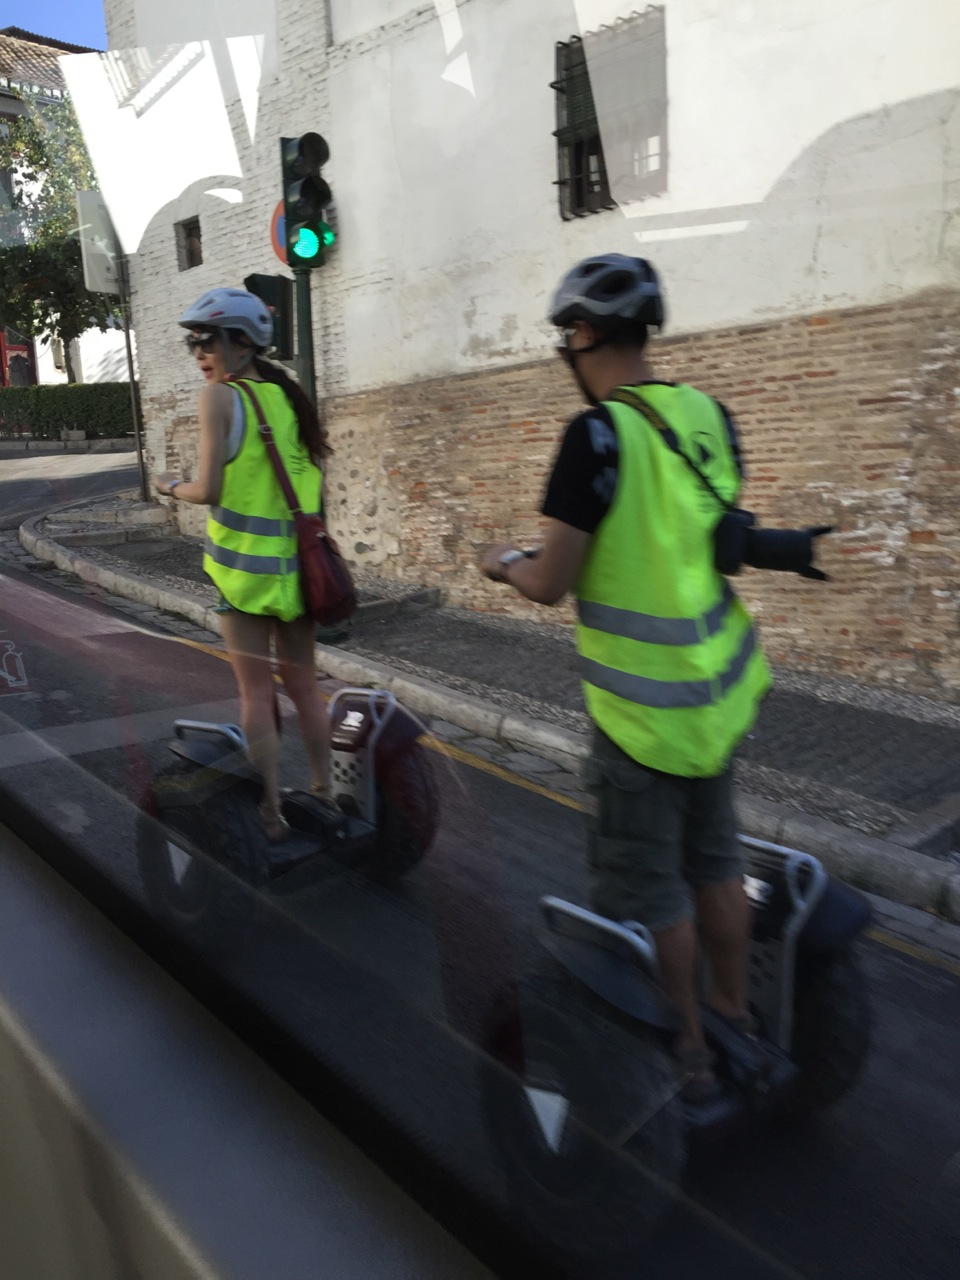 Tourists ride Segways in the ancient Sacromonte section of Granada, Spain. The Sacromonte was once off-limits to tourists.